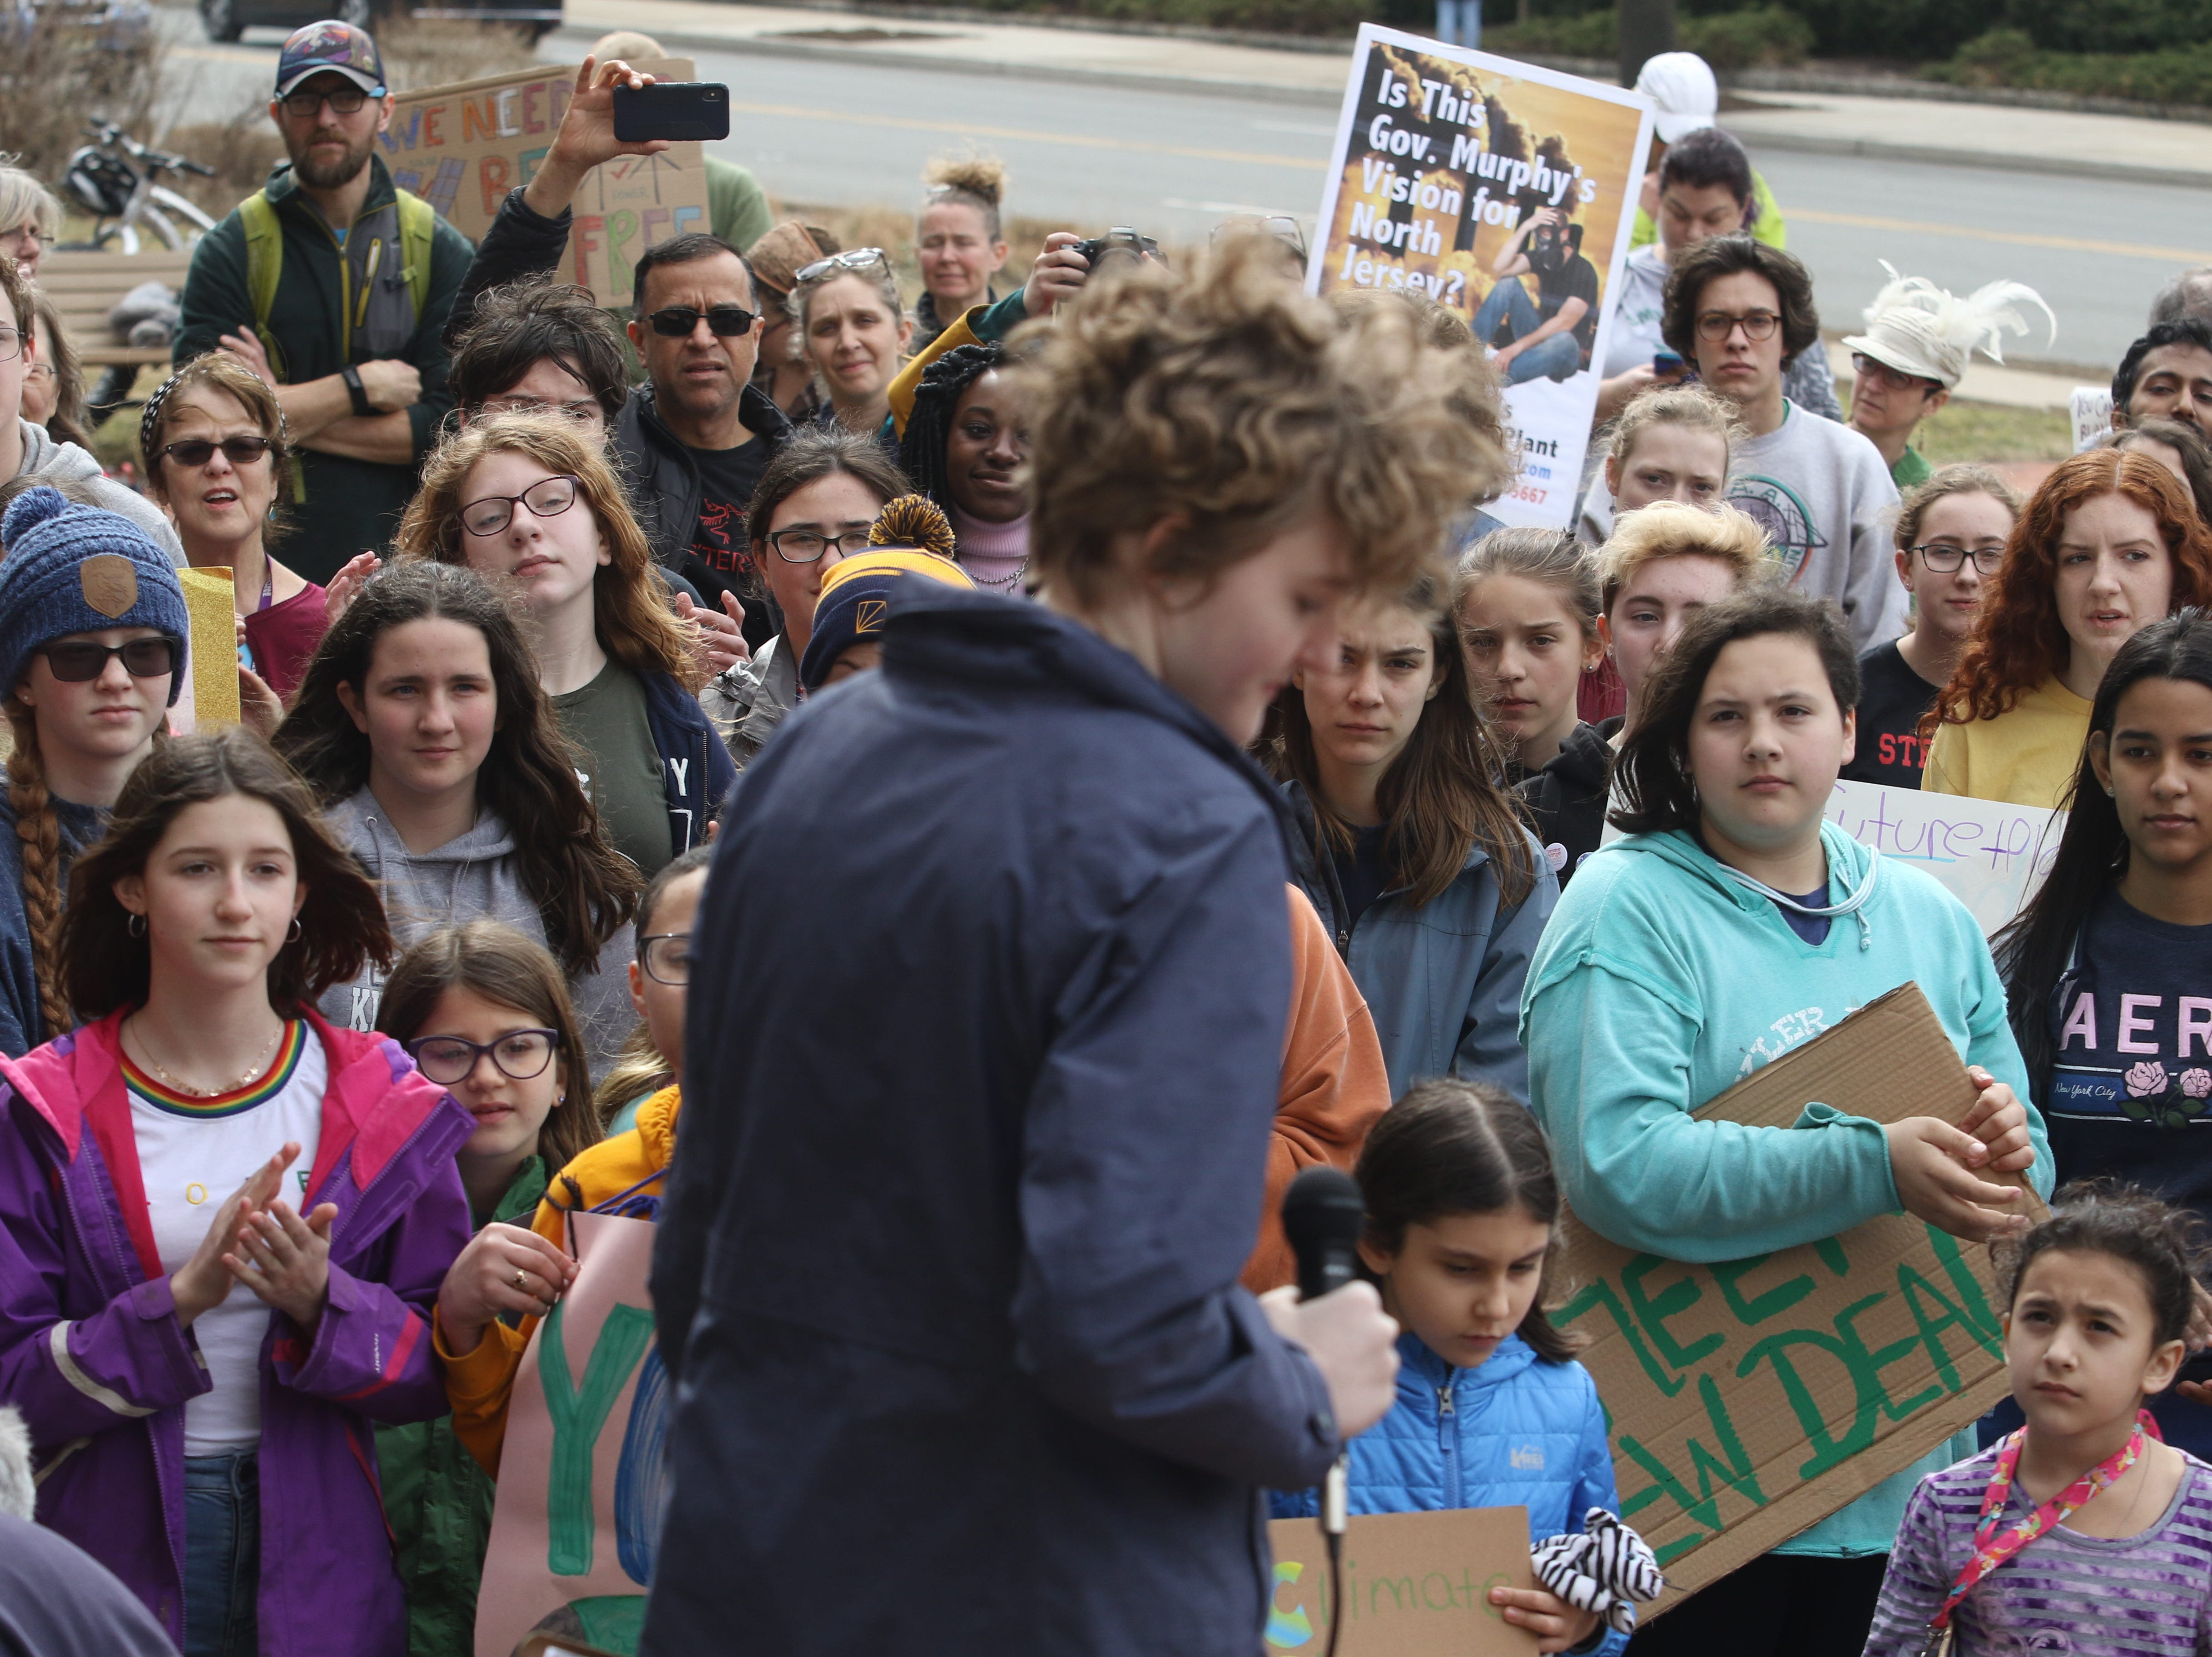 The crowd of students applaud Eden Summerlin 16 of Madison after she addressed the protesters in front of the Morristown Municipal Building on March 15, 2019 to express their demands to address climate change.